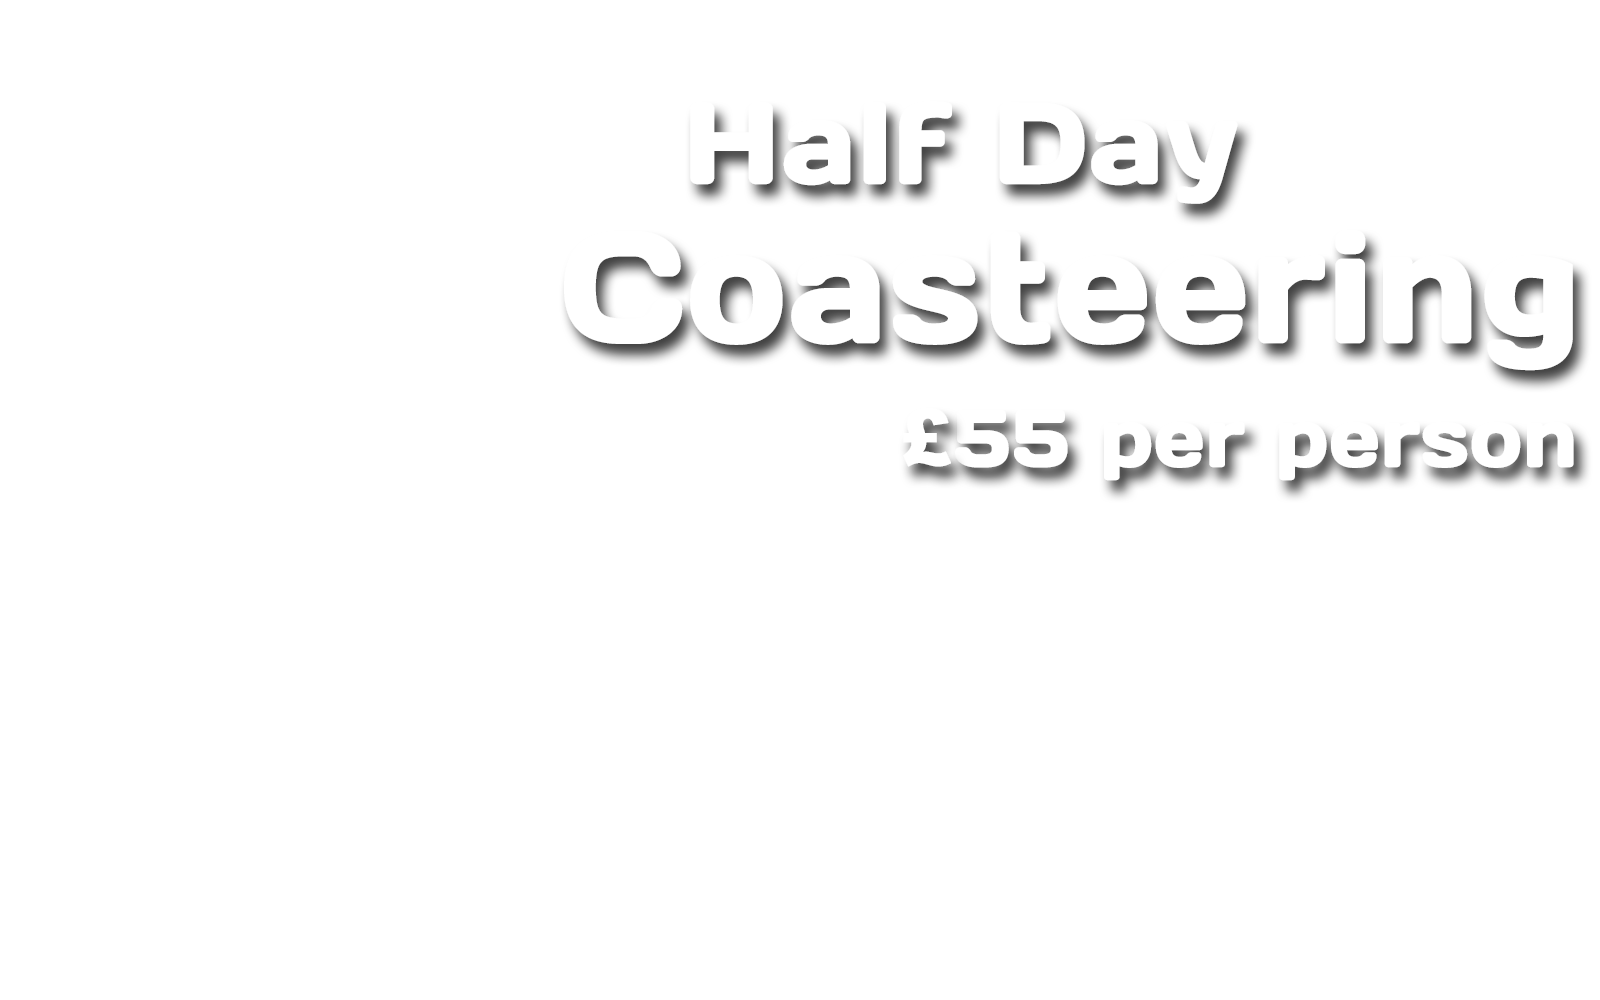 Pembrokeshire Coasteering Prices - Half Day Coasteering at the Blue Lagoon Abereiddy near St Davids costs £55 per person